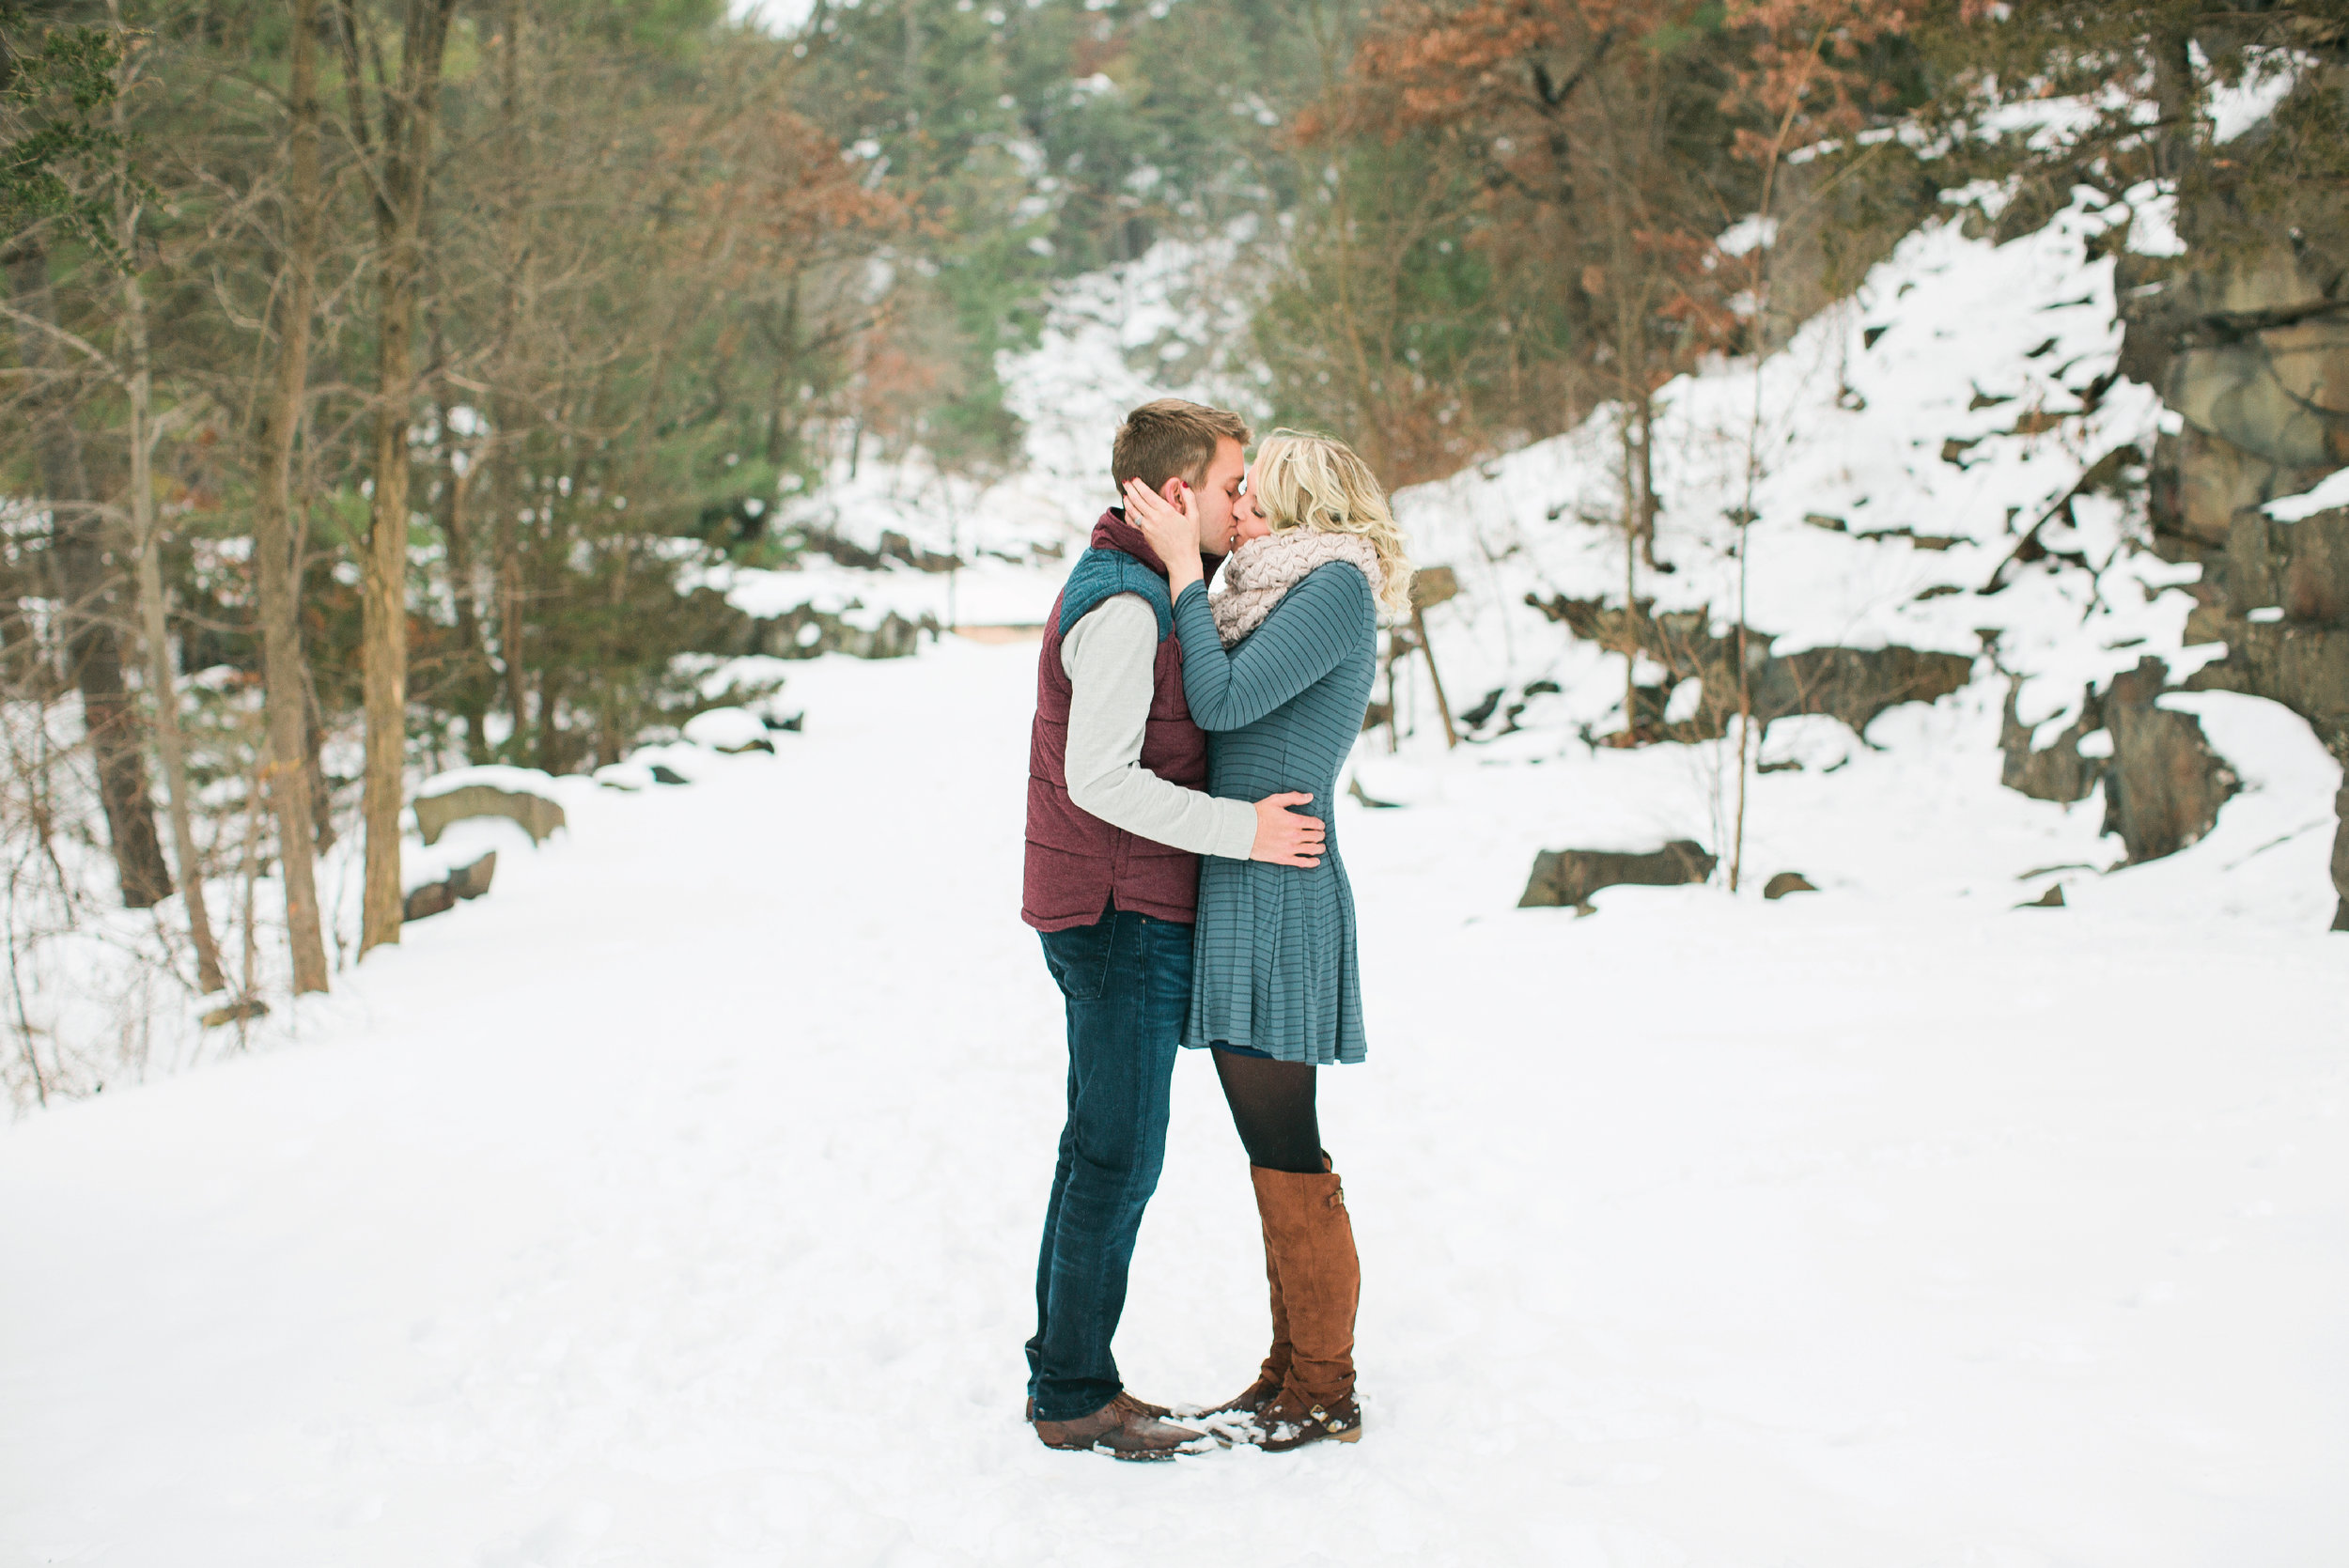 Taylors Falls Minnesota snowy winter engagement session in the woods with couple kissing